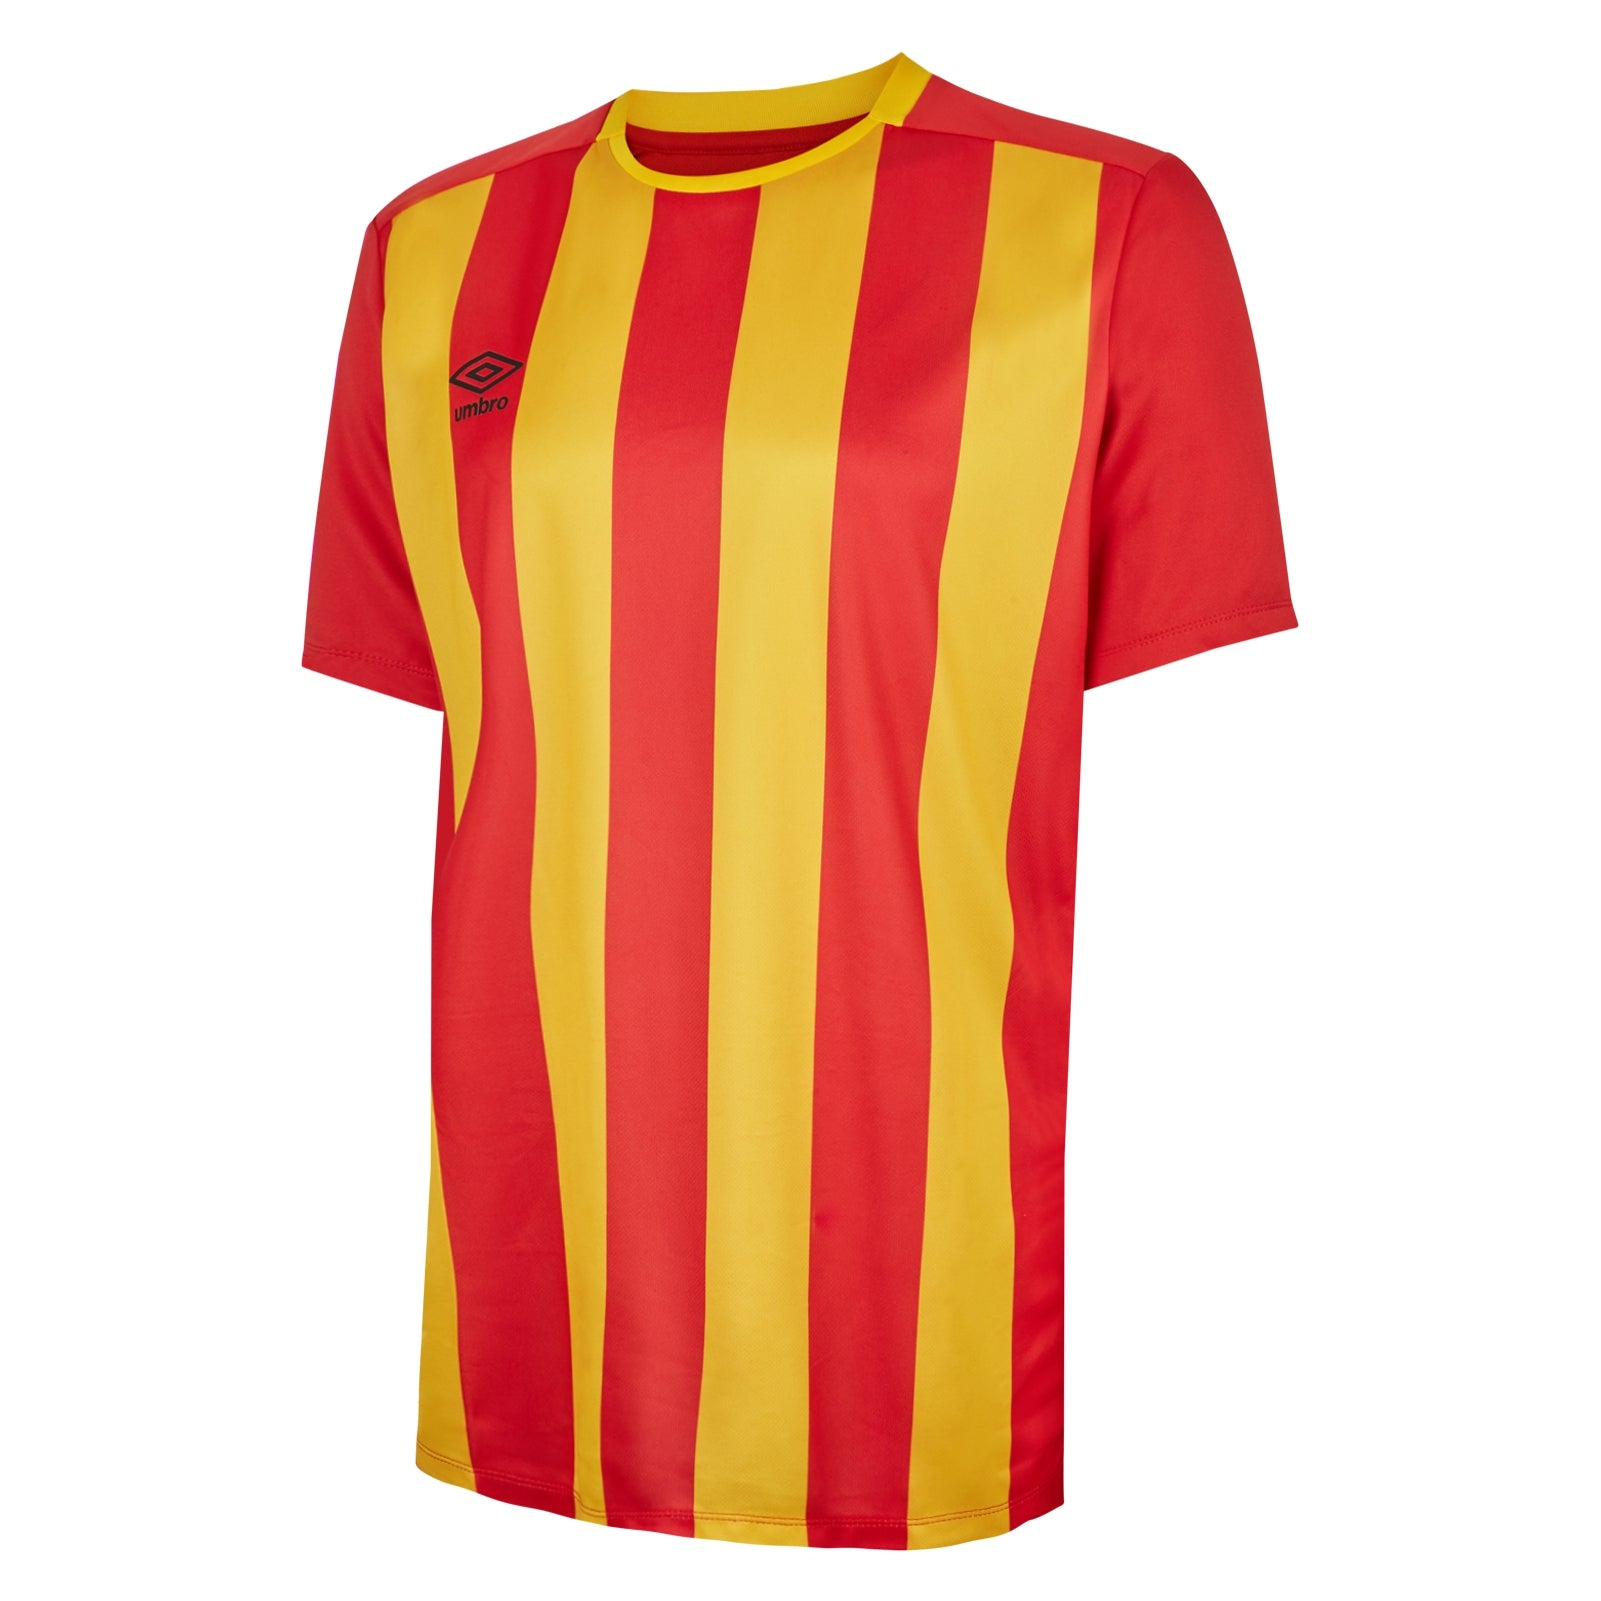 Umbro Milan jersey in short sleeve with vermillion (red) and SV Yellow stripes